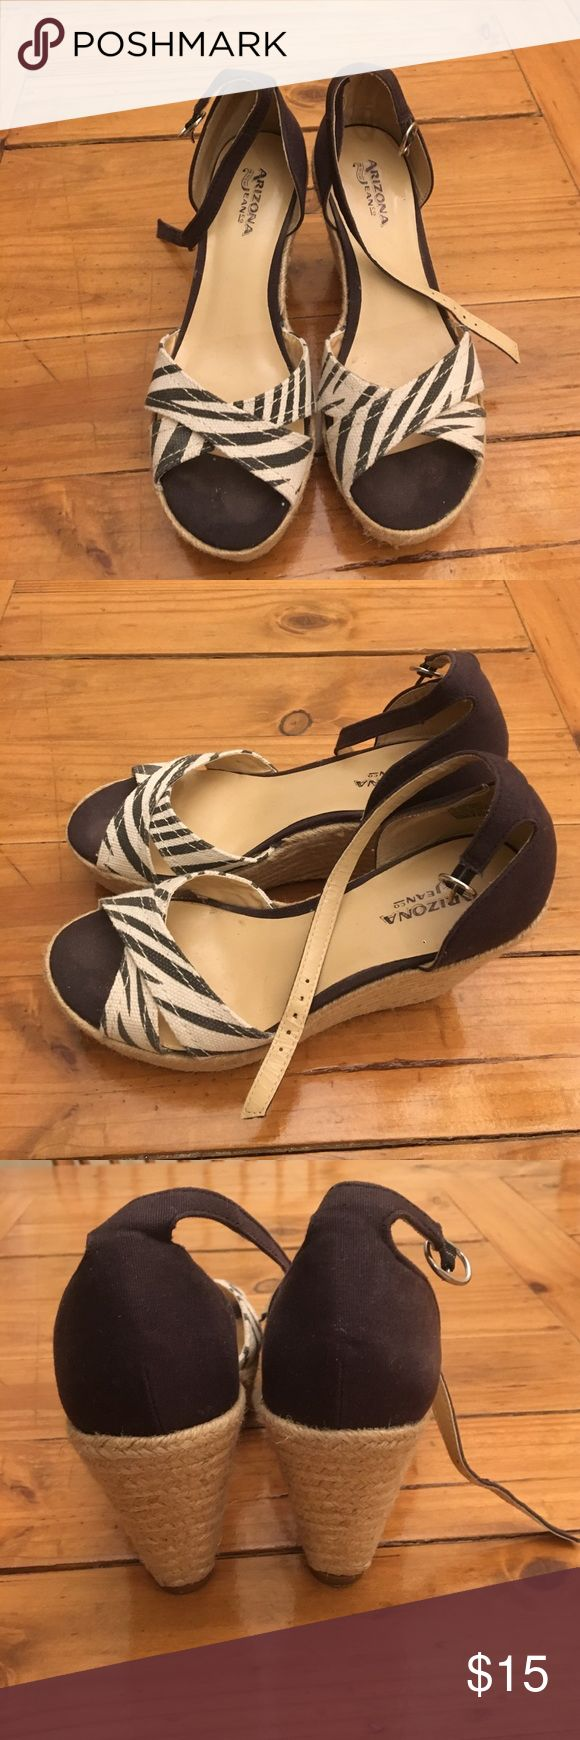 Espadrilles, size 7 Black and white espadrilles wedges, size 7. Slightly used but still in good condition. Arizona Jean Company Shoes Espadrilles